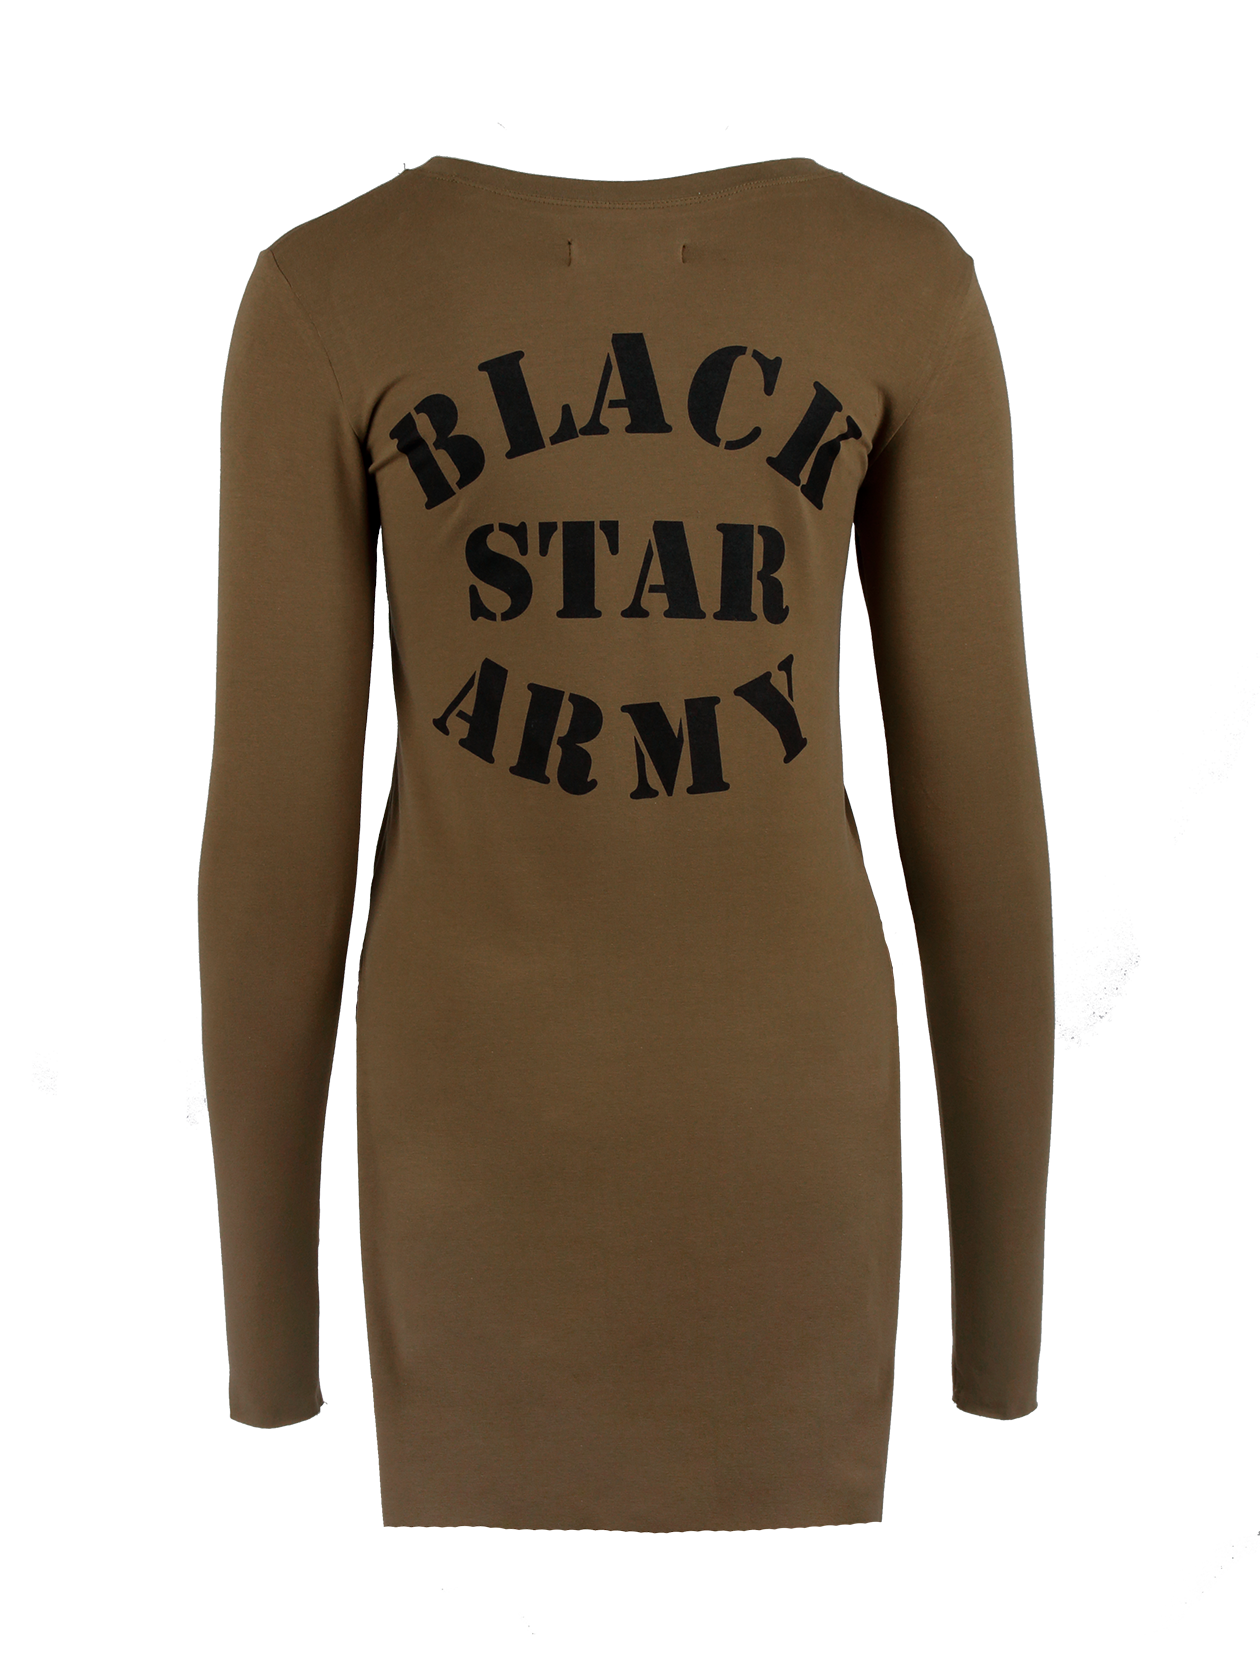 Womens tunic Black Star ArmyWomens tunic by Black Star Wear. Knee length, long sleeves, o-neck, raw cuts. Black Star Wear print on the back. Natural cotton and elastan blend. Avaliable in khaki.<br><br>size: S<br>color: Khaki<br>gender: female